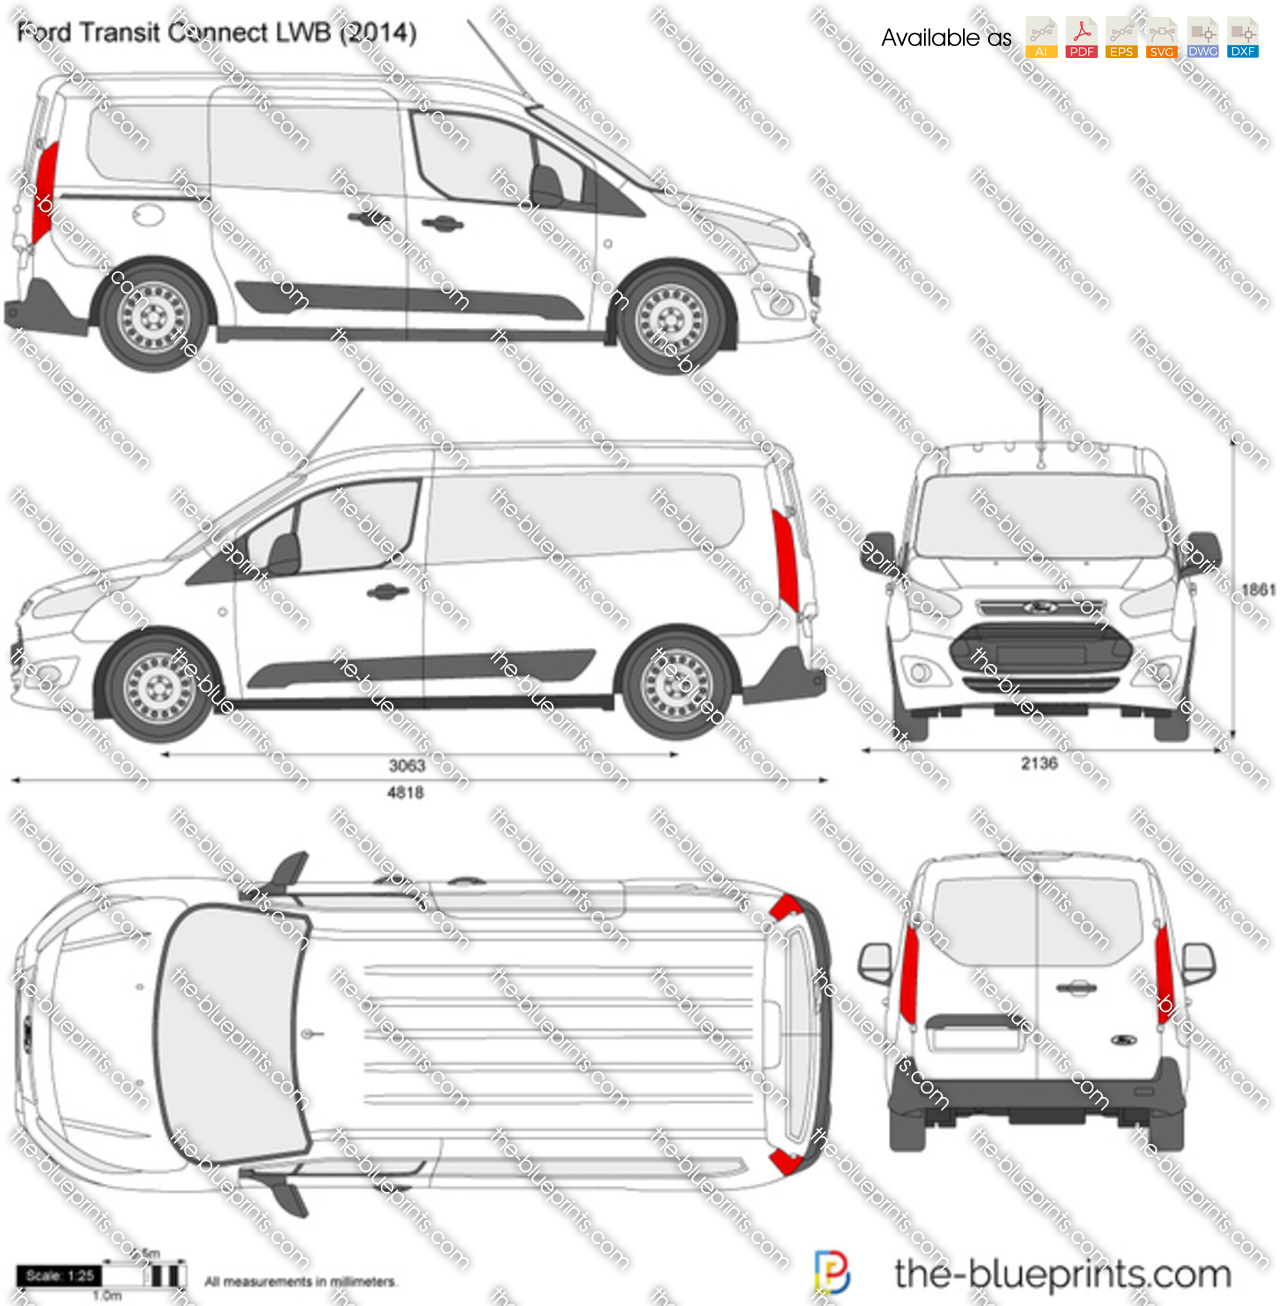 2017 Transit Connect: Ford Transit Connect LWB Vector Drawing